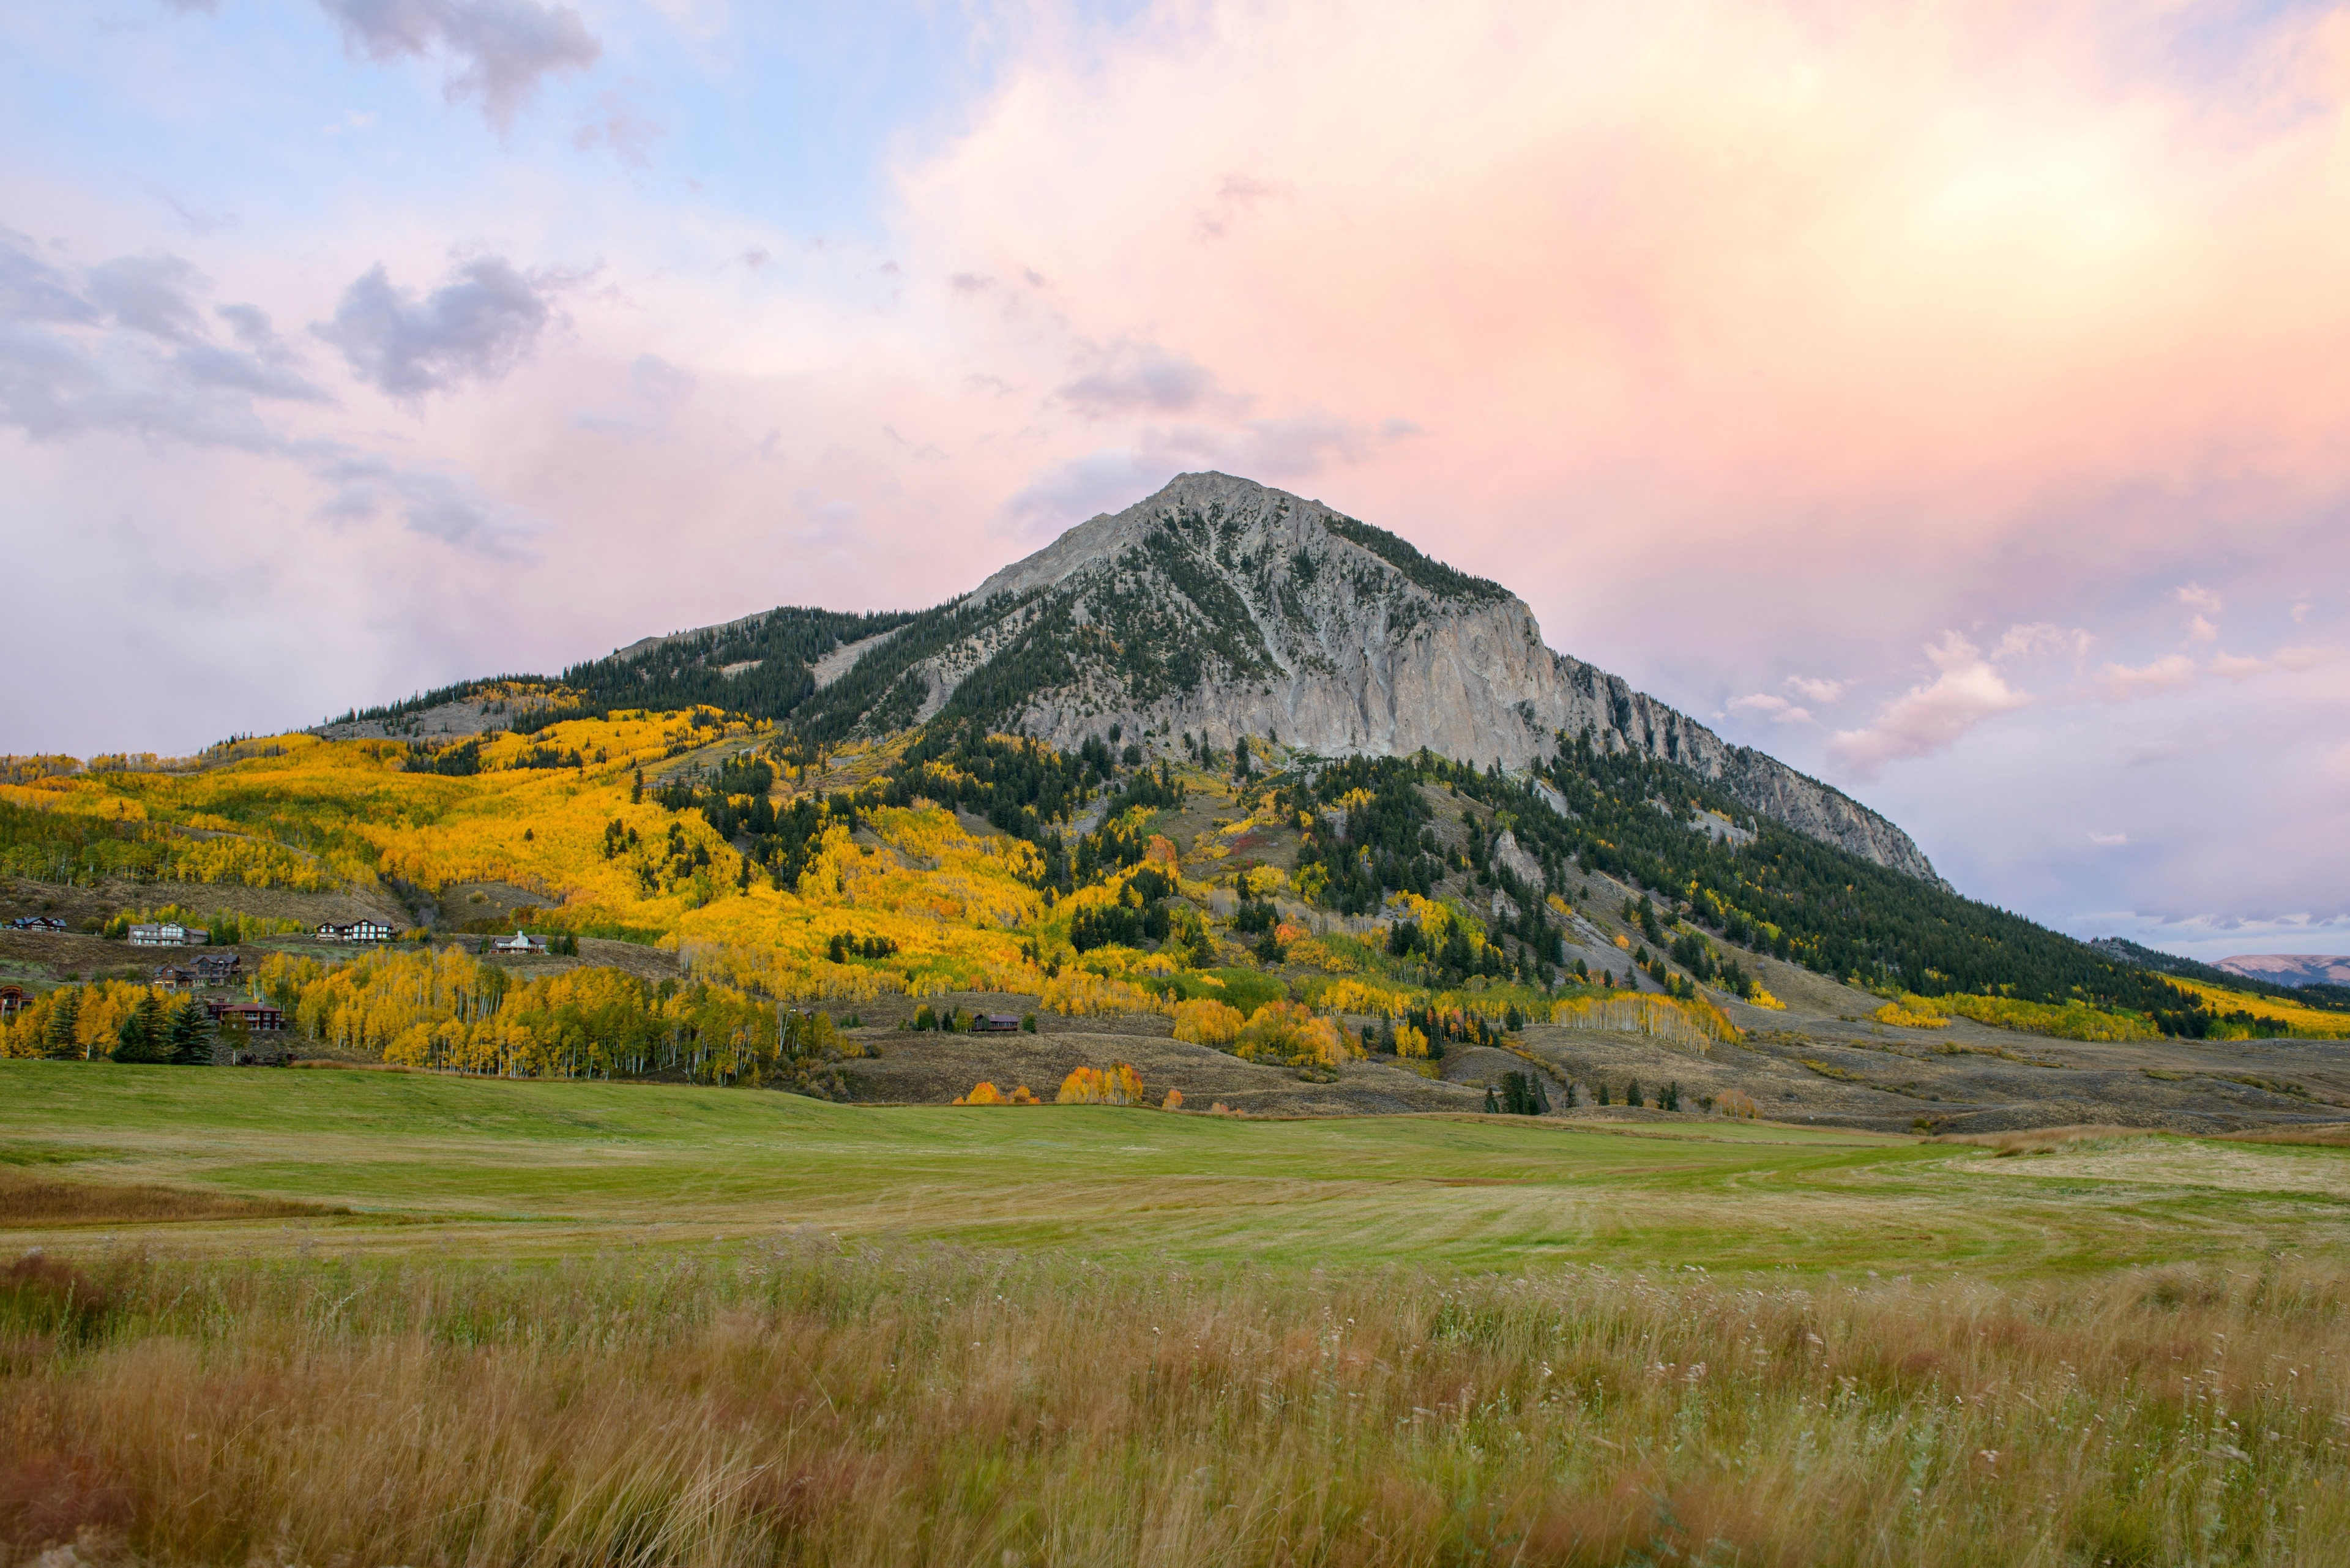 Mount Crested Butte, Colorado, United States of America